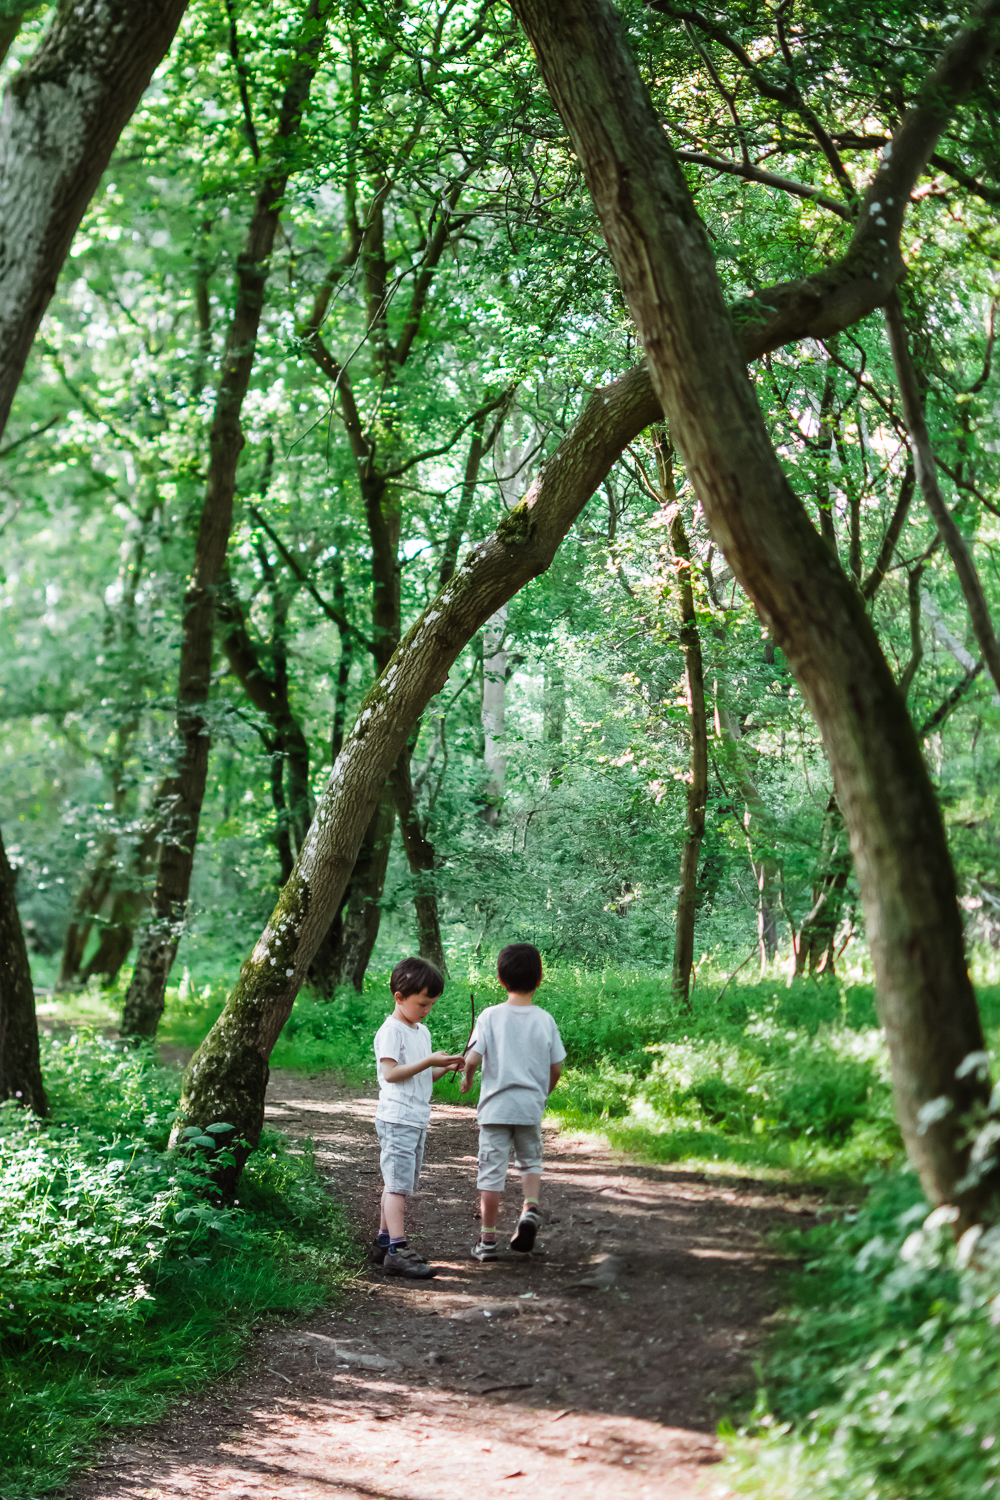 Children in a woodland setting